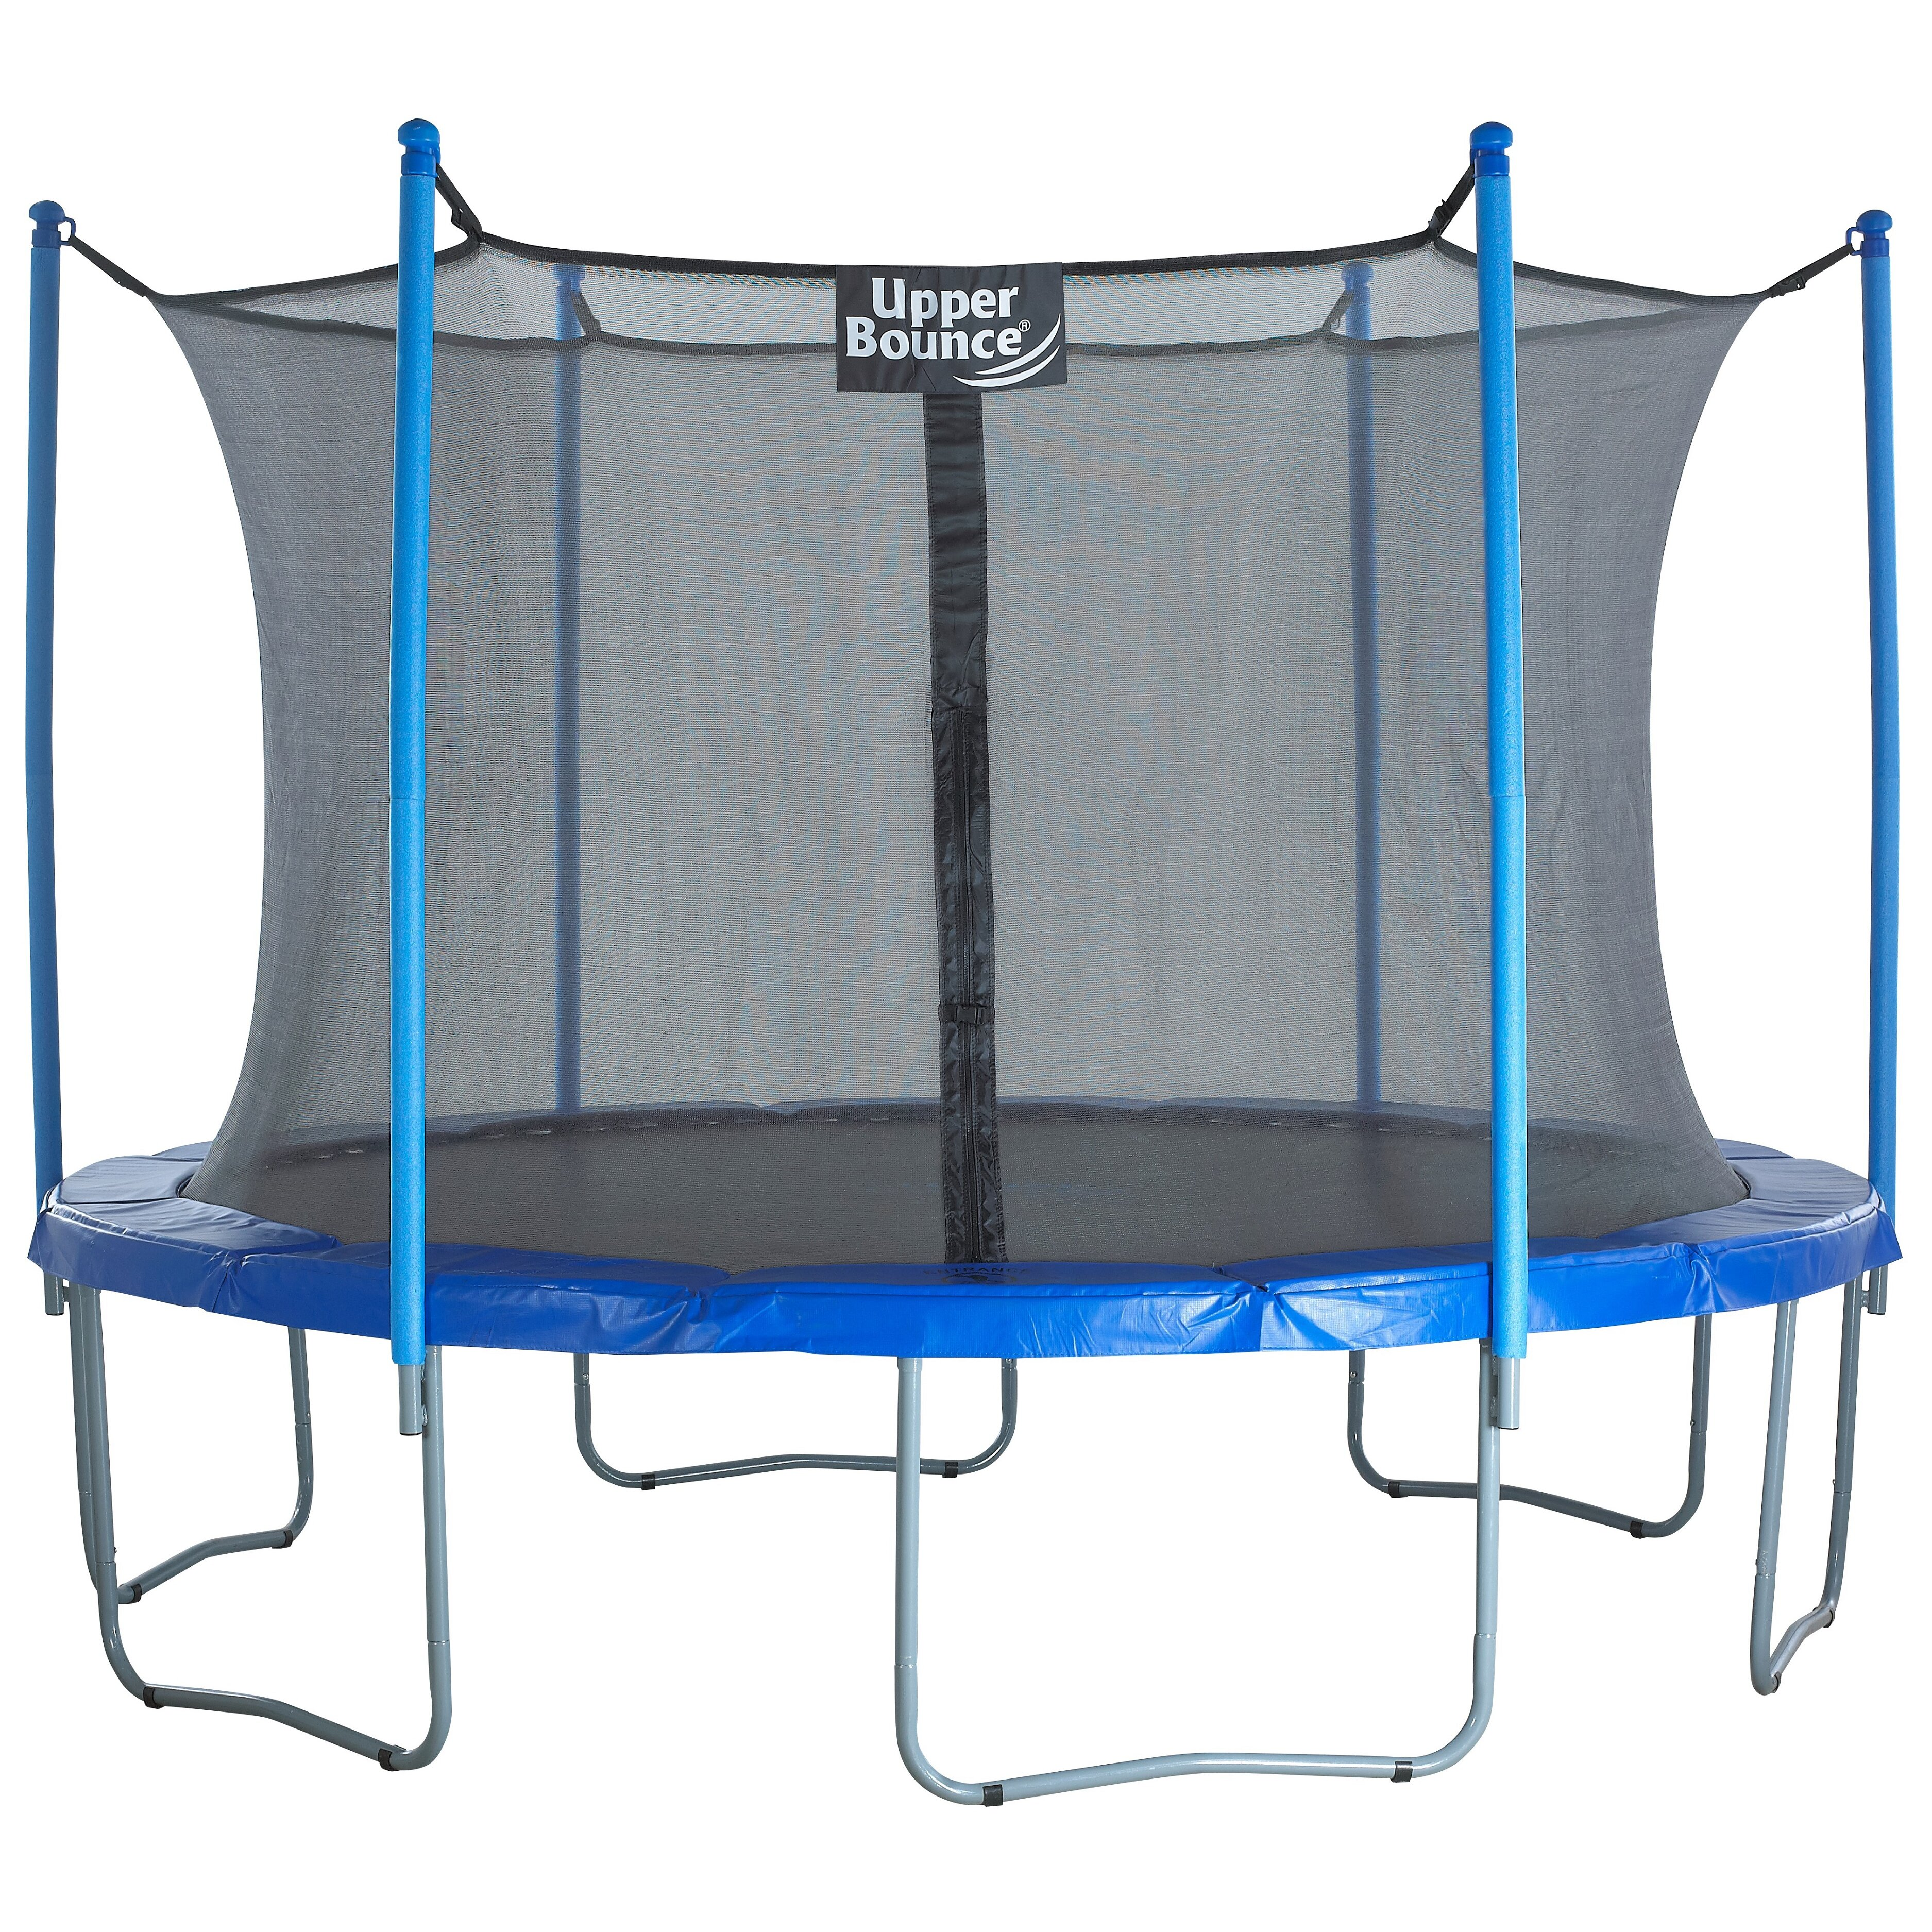 Upper bounce 16 trampoline with enclosure amp reviews wayfair